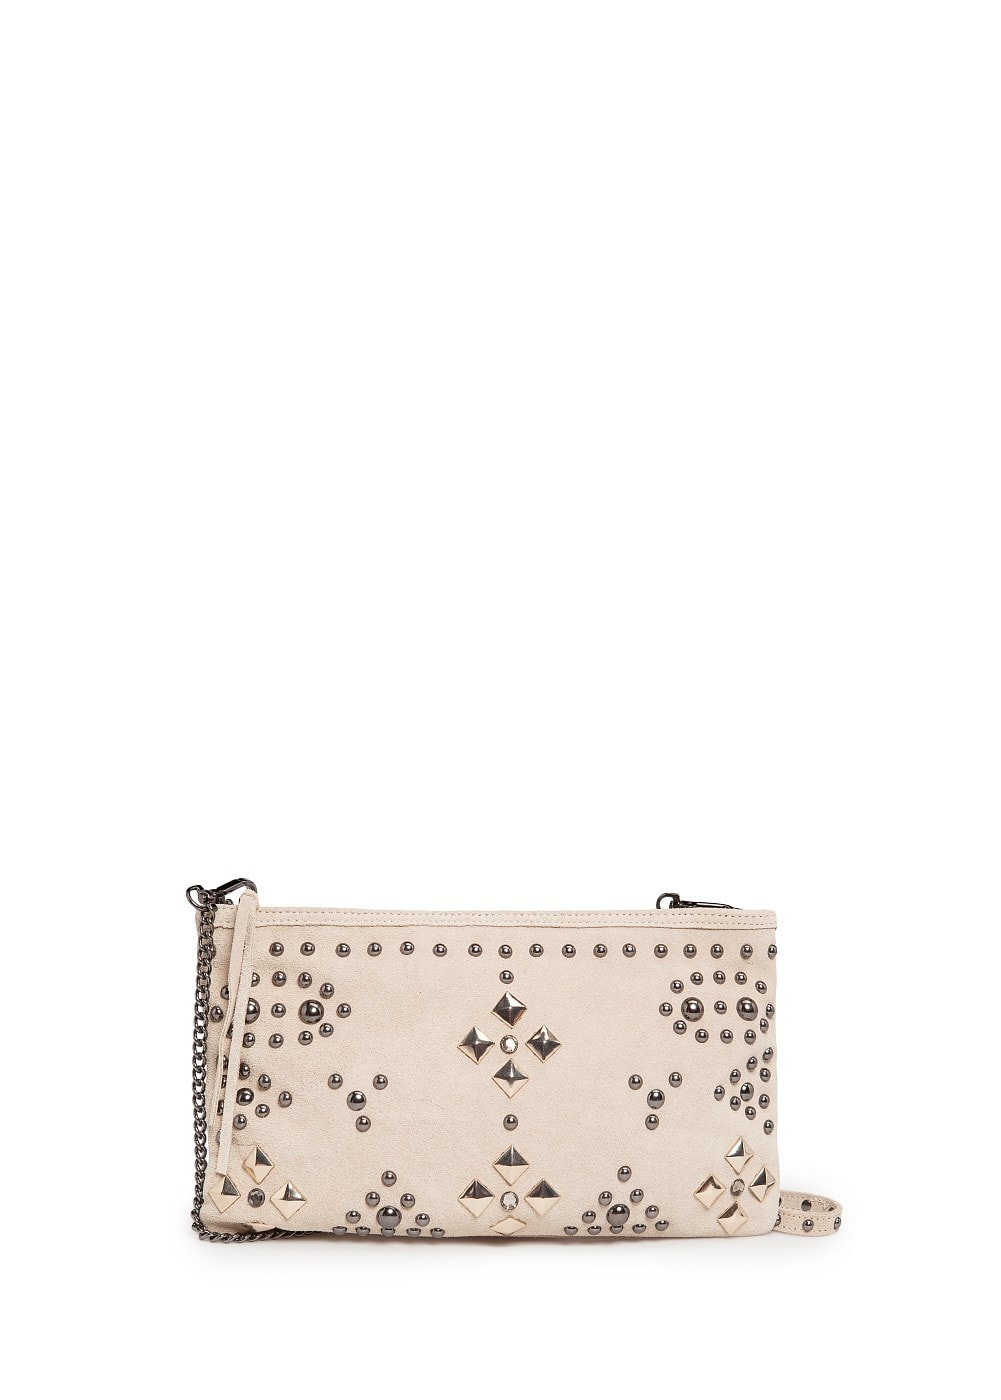 Studded suede bag